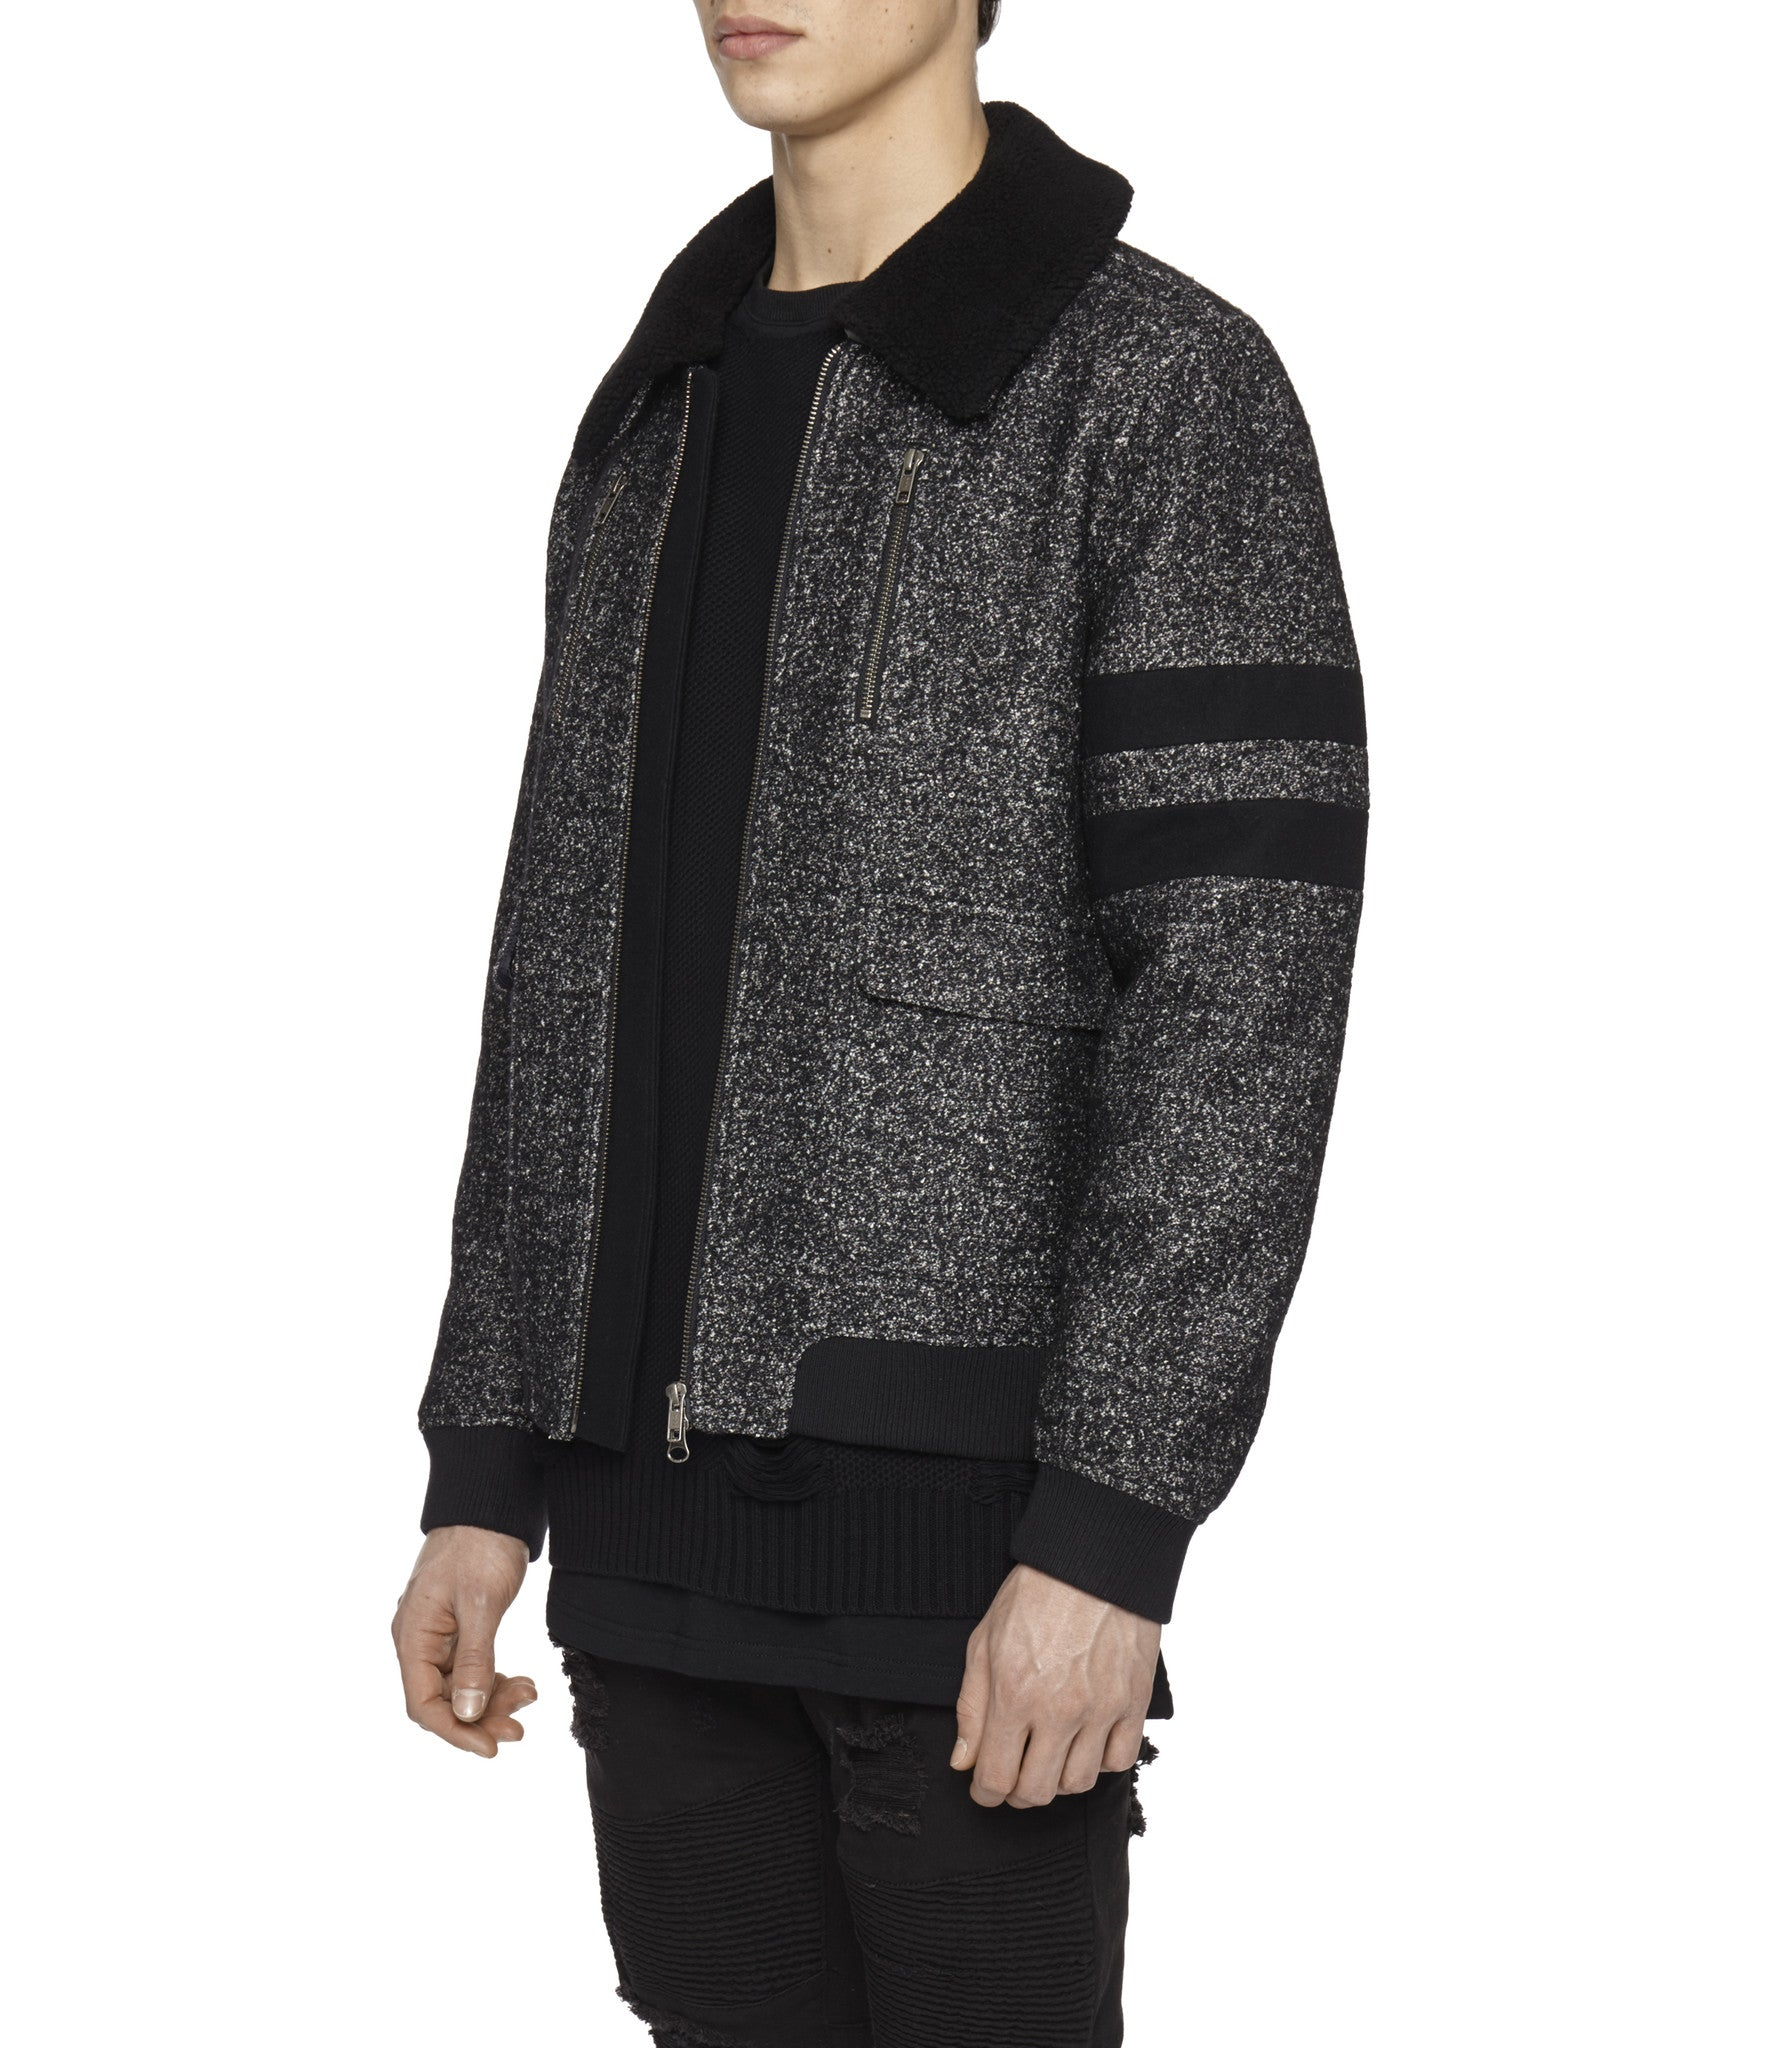 JK225 Shearling-Trimmed Mélange Wool Jacket - Black - underated london - underatedco - 6